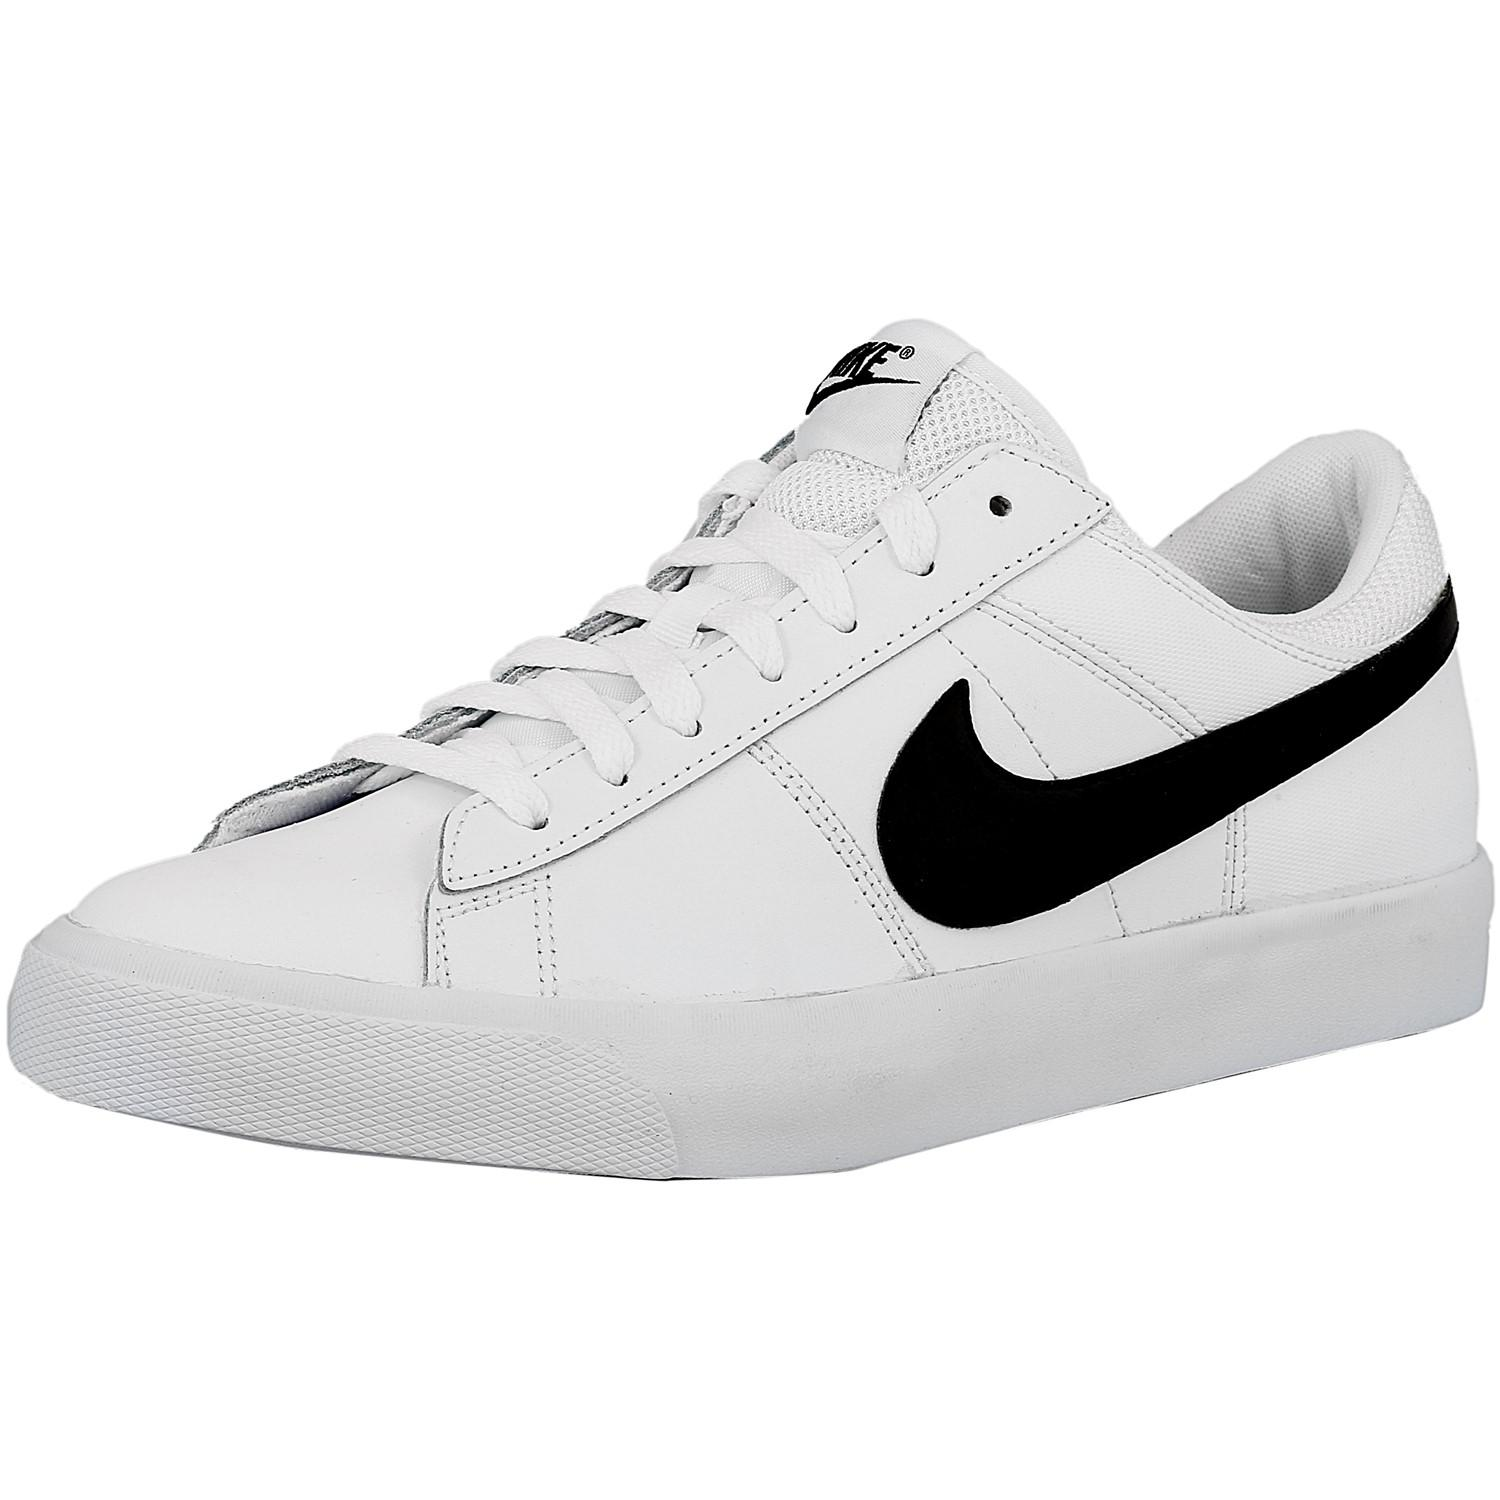 the best attitude c5499 6ddcb nike-White-Black-Black-White-Match-Supreme-White-Black-black-white-Ankle- high-Leather-Tennis-Shoe.jpeg